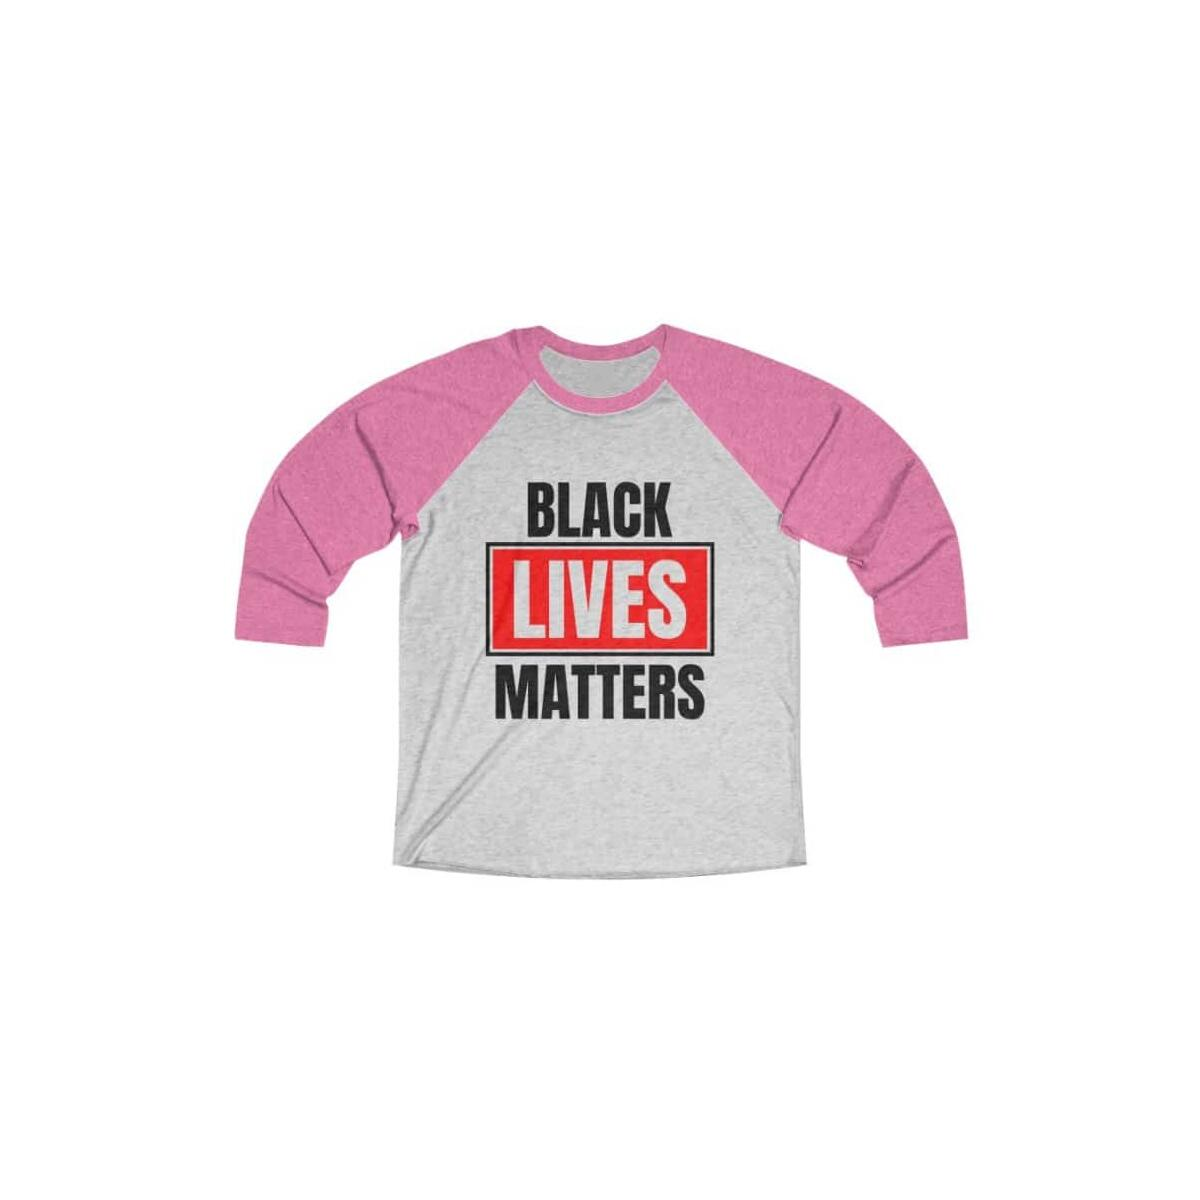 Afrocentric Black Lives Matters Tri-Blend Raglan Tee, Vintage Pink / Heather White / M